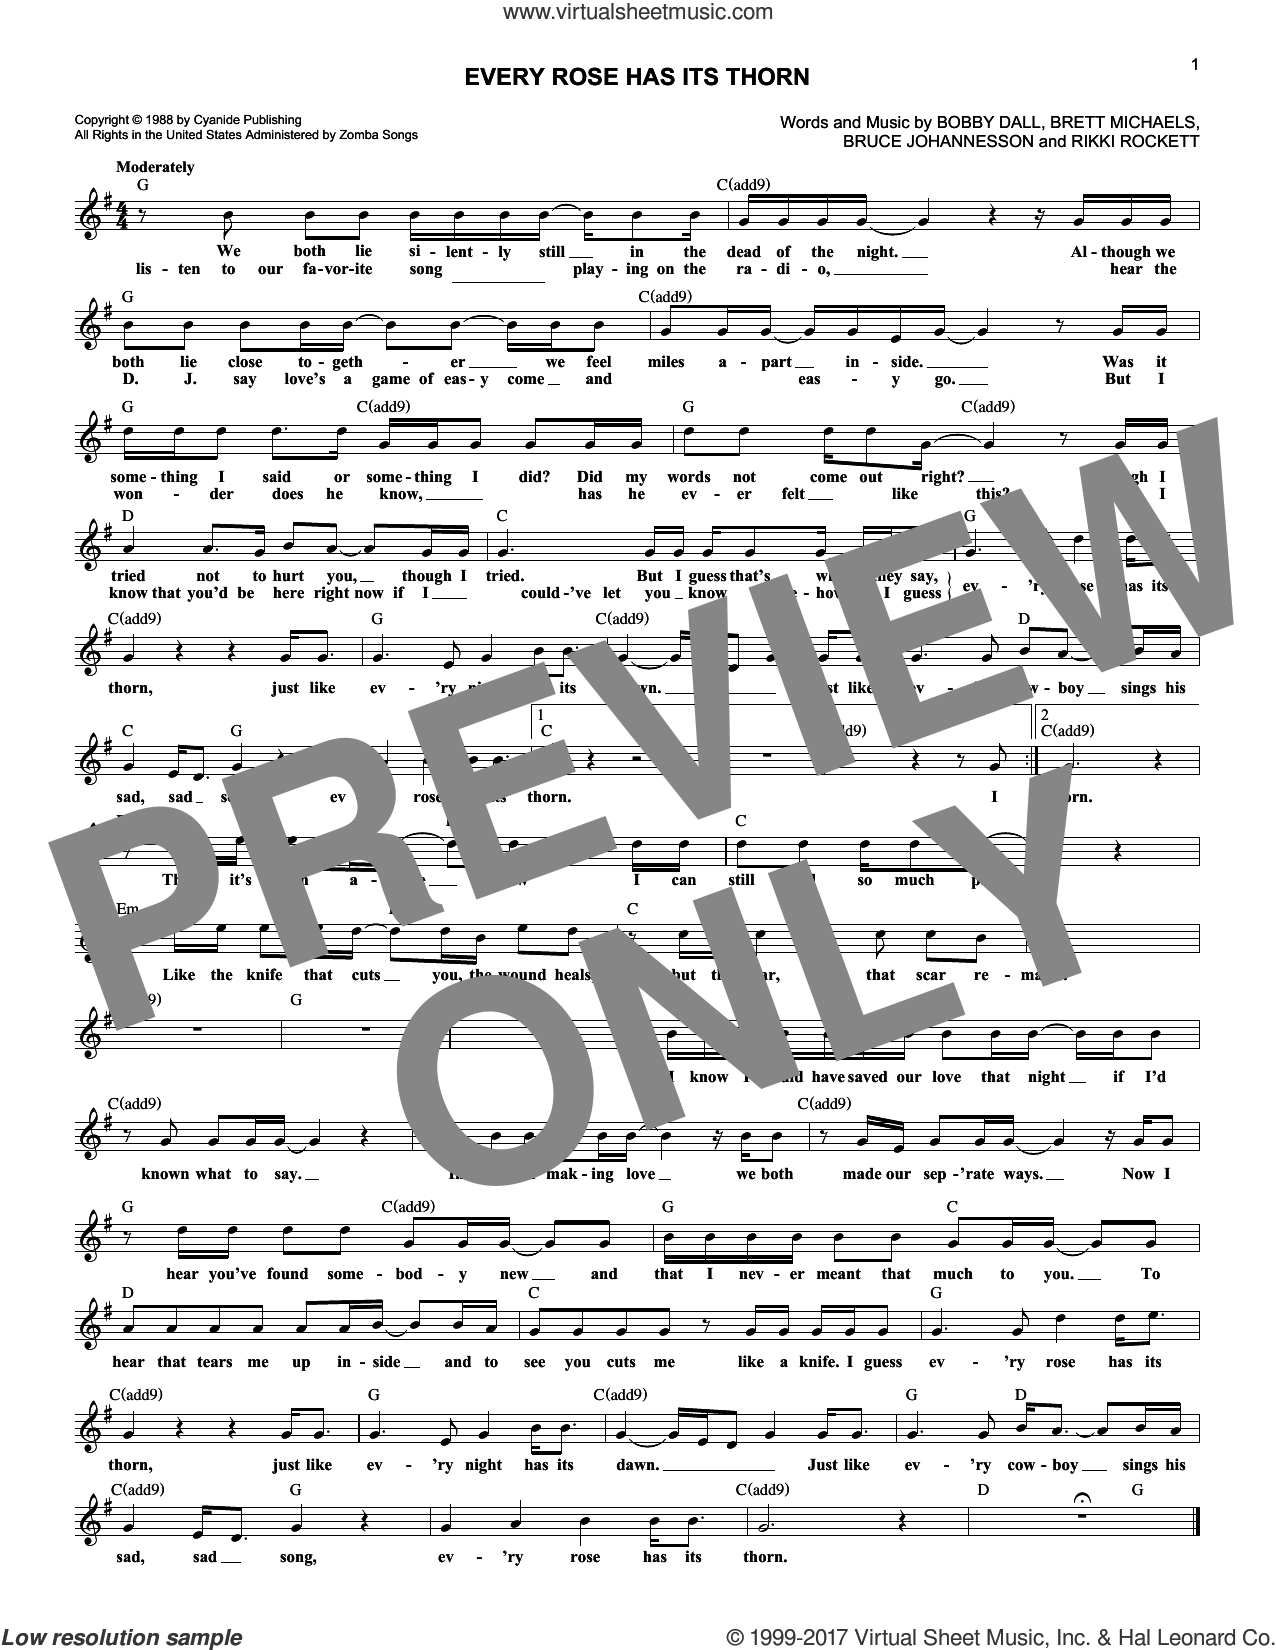 Every Rose Has Its Thorn sheet music for voice and other instruments (fake book) by Poison, Bobby Dall, Bret Michaels, C.C. Deville and Rikki Rockett, intermediate skill level